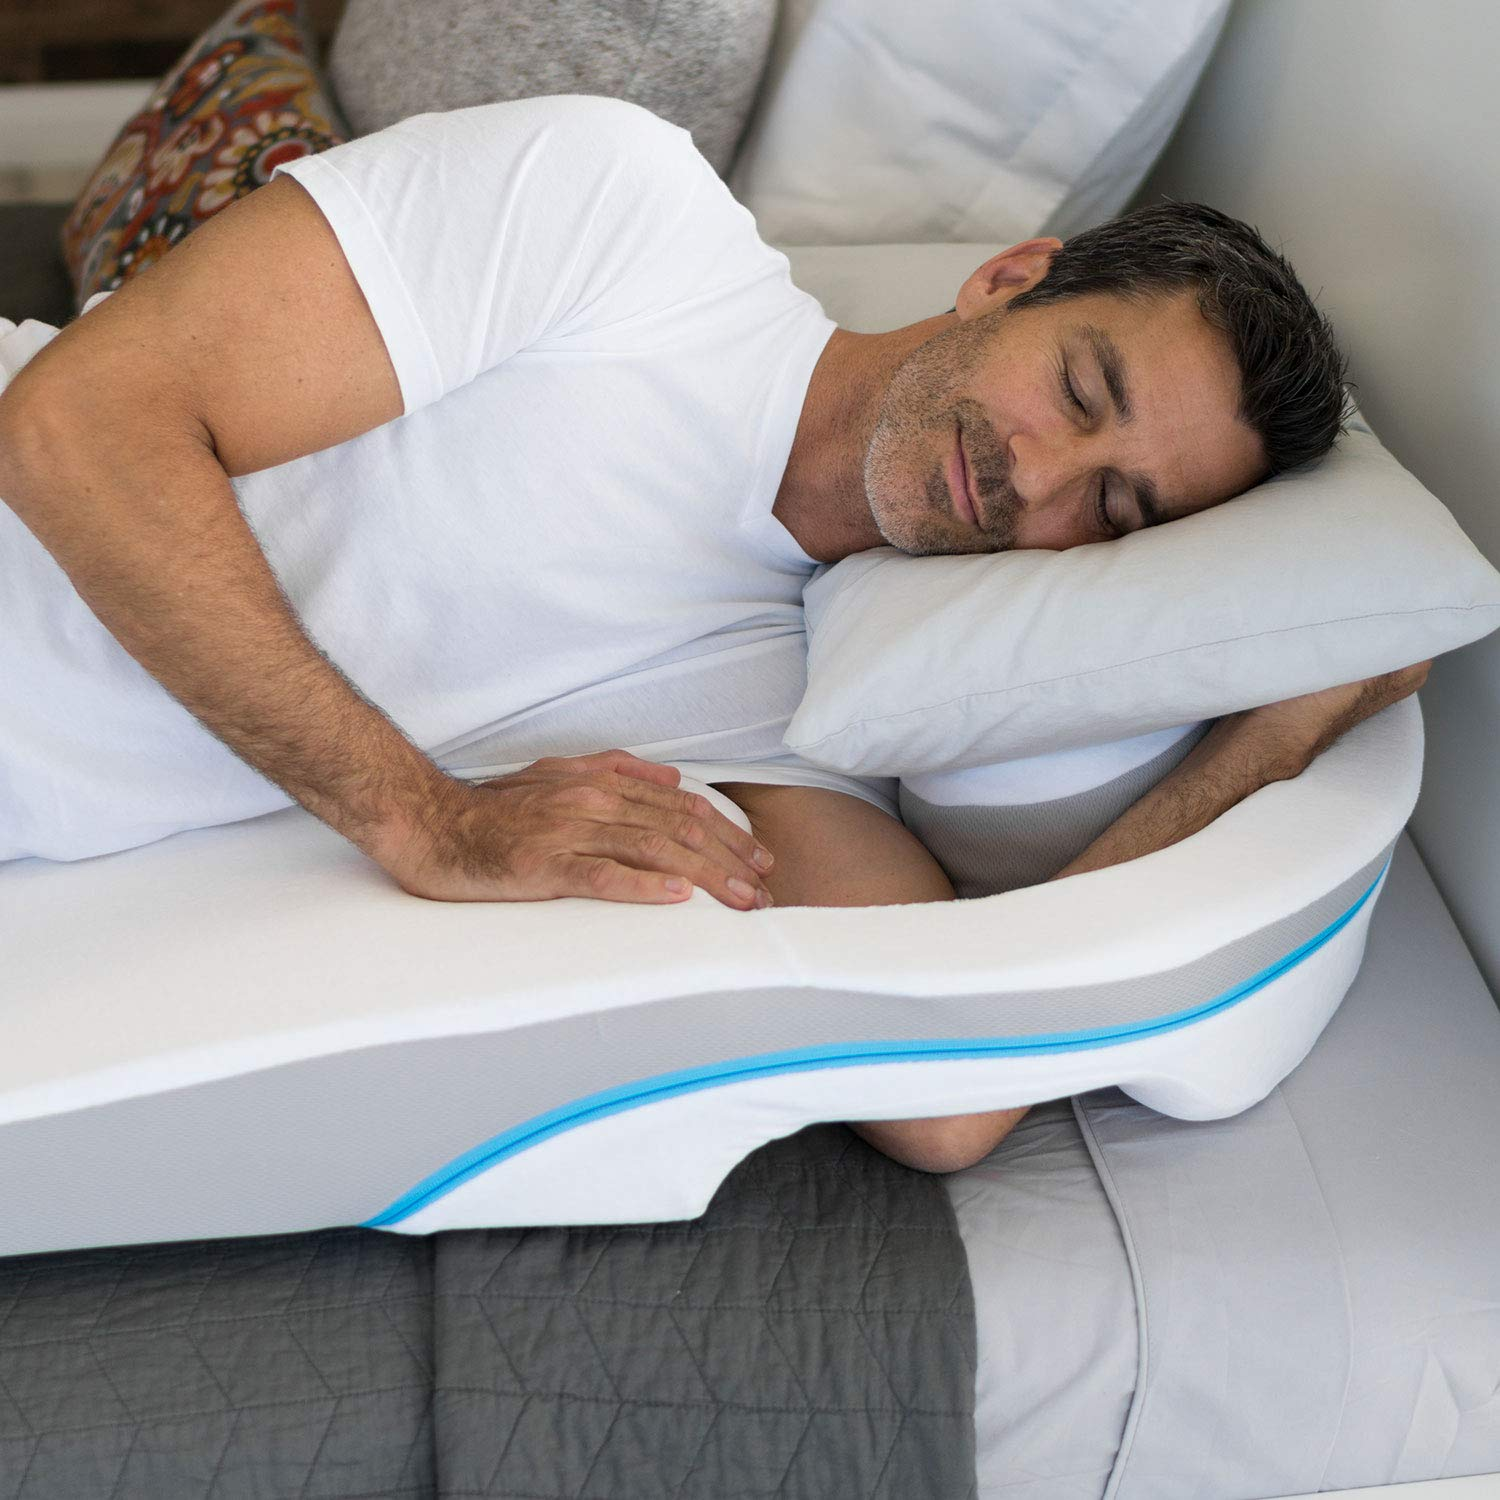 MedCline LP Shoulder Relief Wedge and Body Pillow System | Shoulder Pressure Relief for Right or Left, Side-Sleeping Comfort | Medical Grade | Body Pillow Included, One Size by MedCline (Image #4)